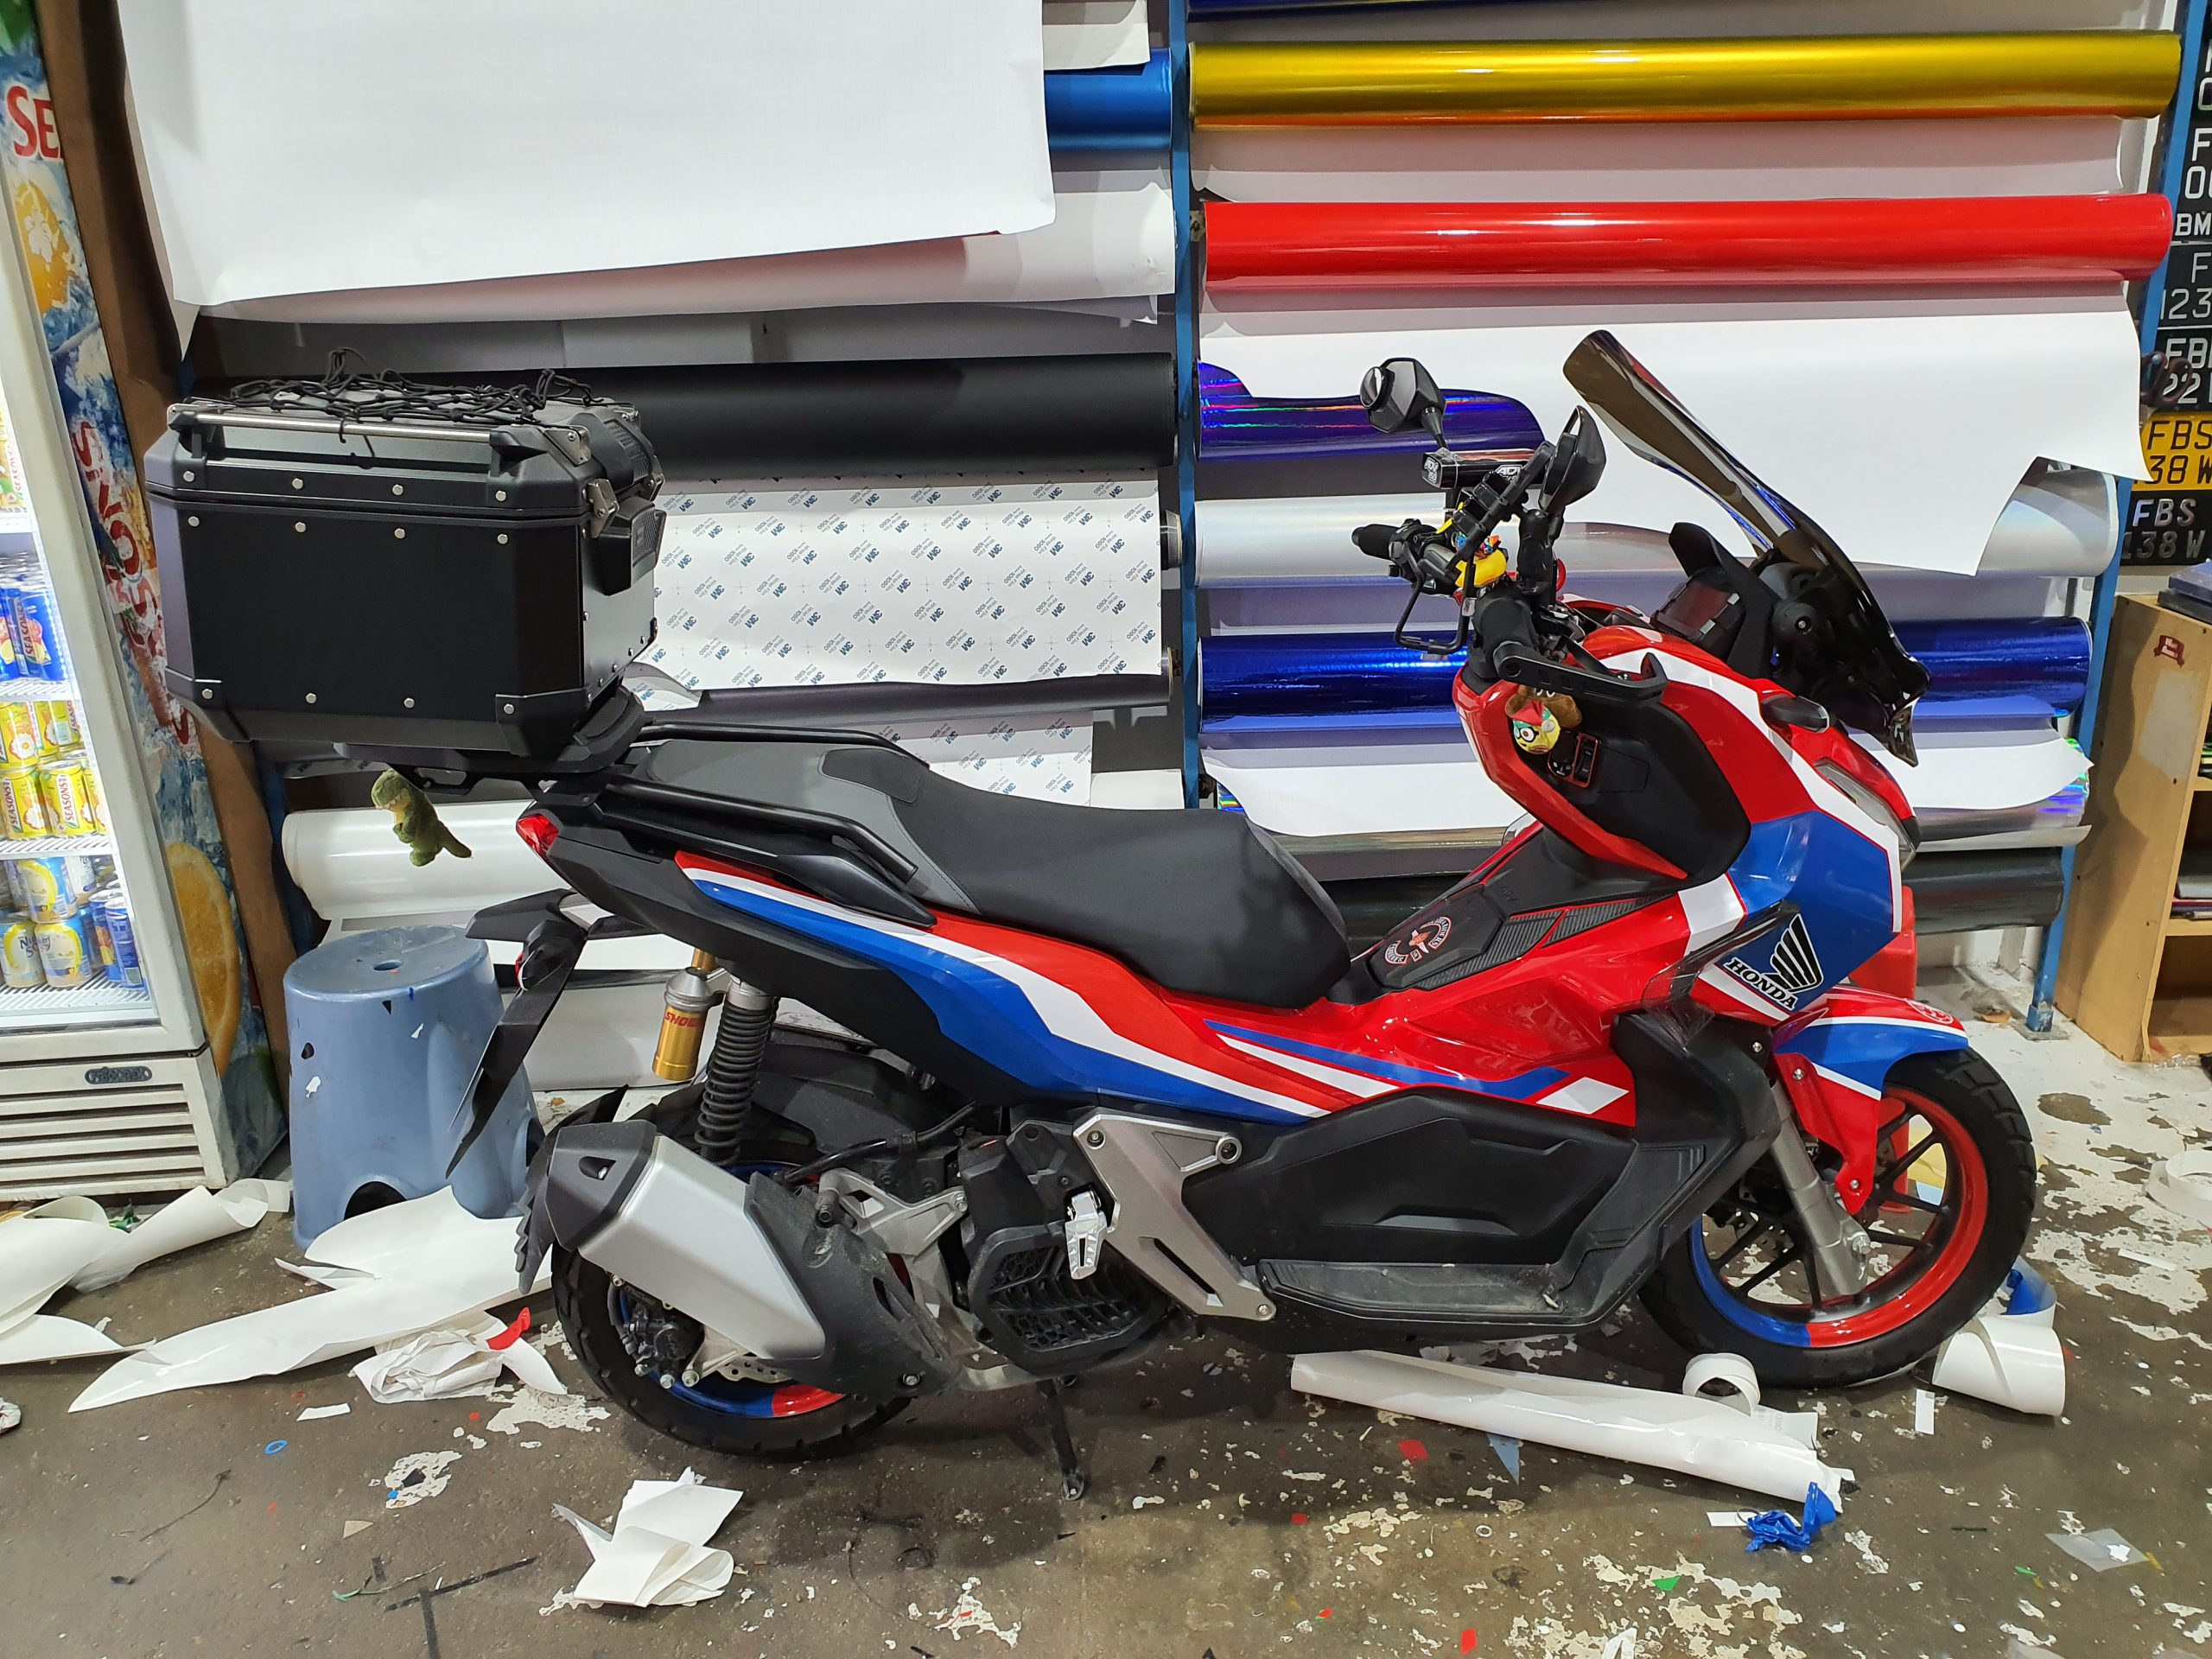 Honda ADV 150 Vinyl Sticker in Red, blue and white